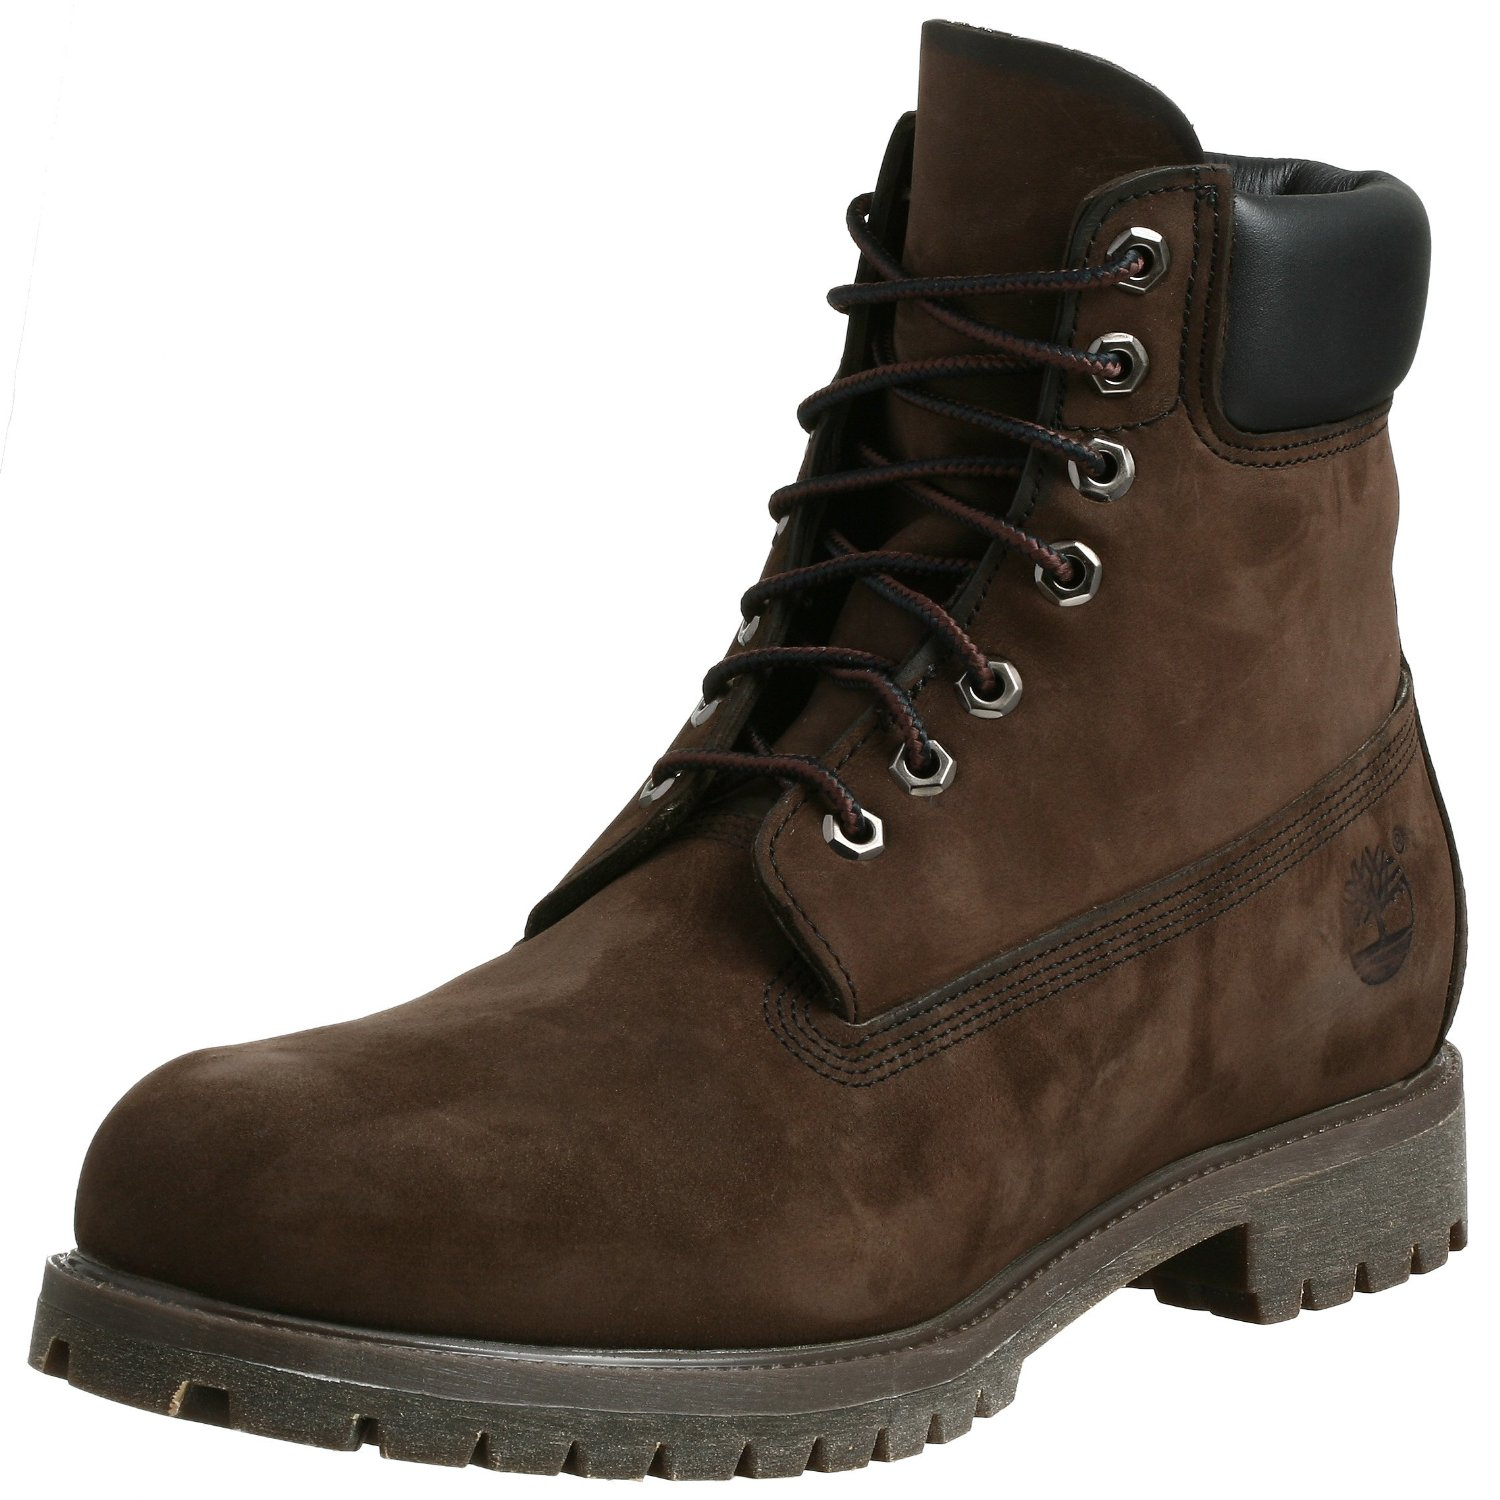 Timberland Boots For Men 2012 Rocks Shoes: Ti...